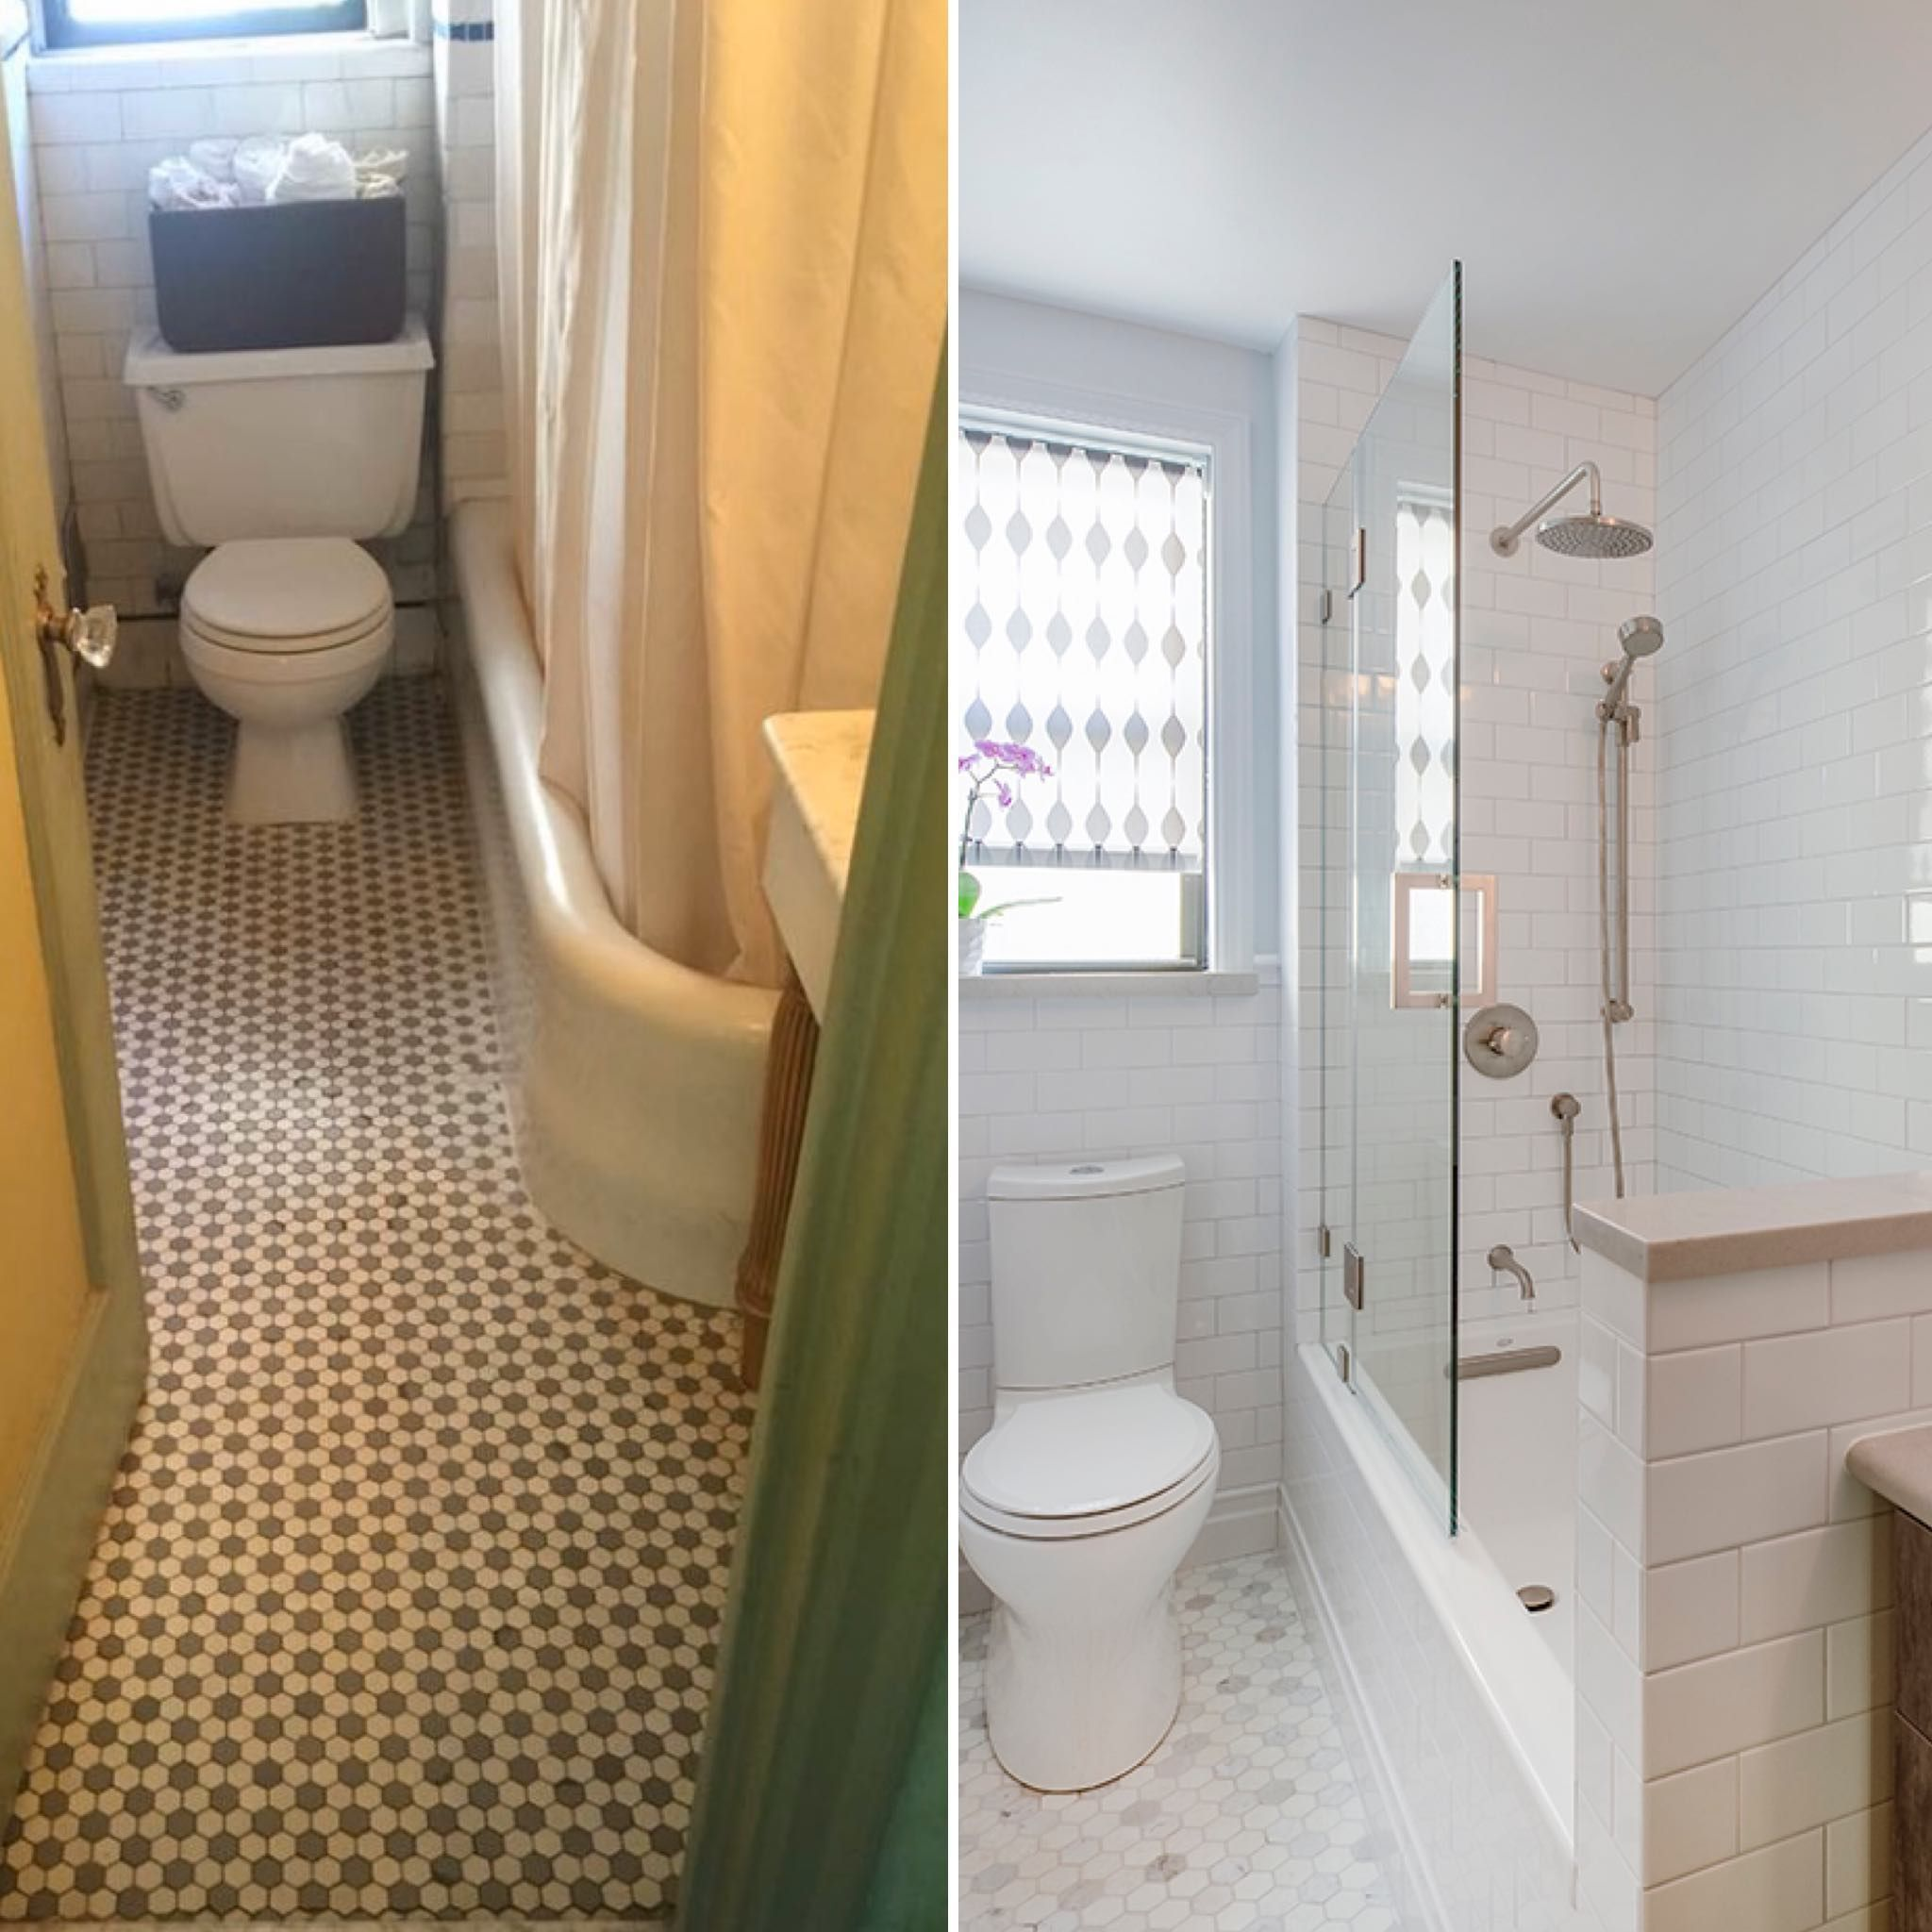 Forget The Throwback We Re Doing Before And After Thursdays What A Transformation From Dark And U In 2020 Bathrooms Remodel Subway Tiles Bathroom Bathroom Renovation